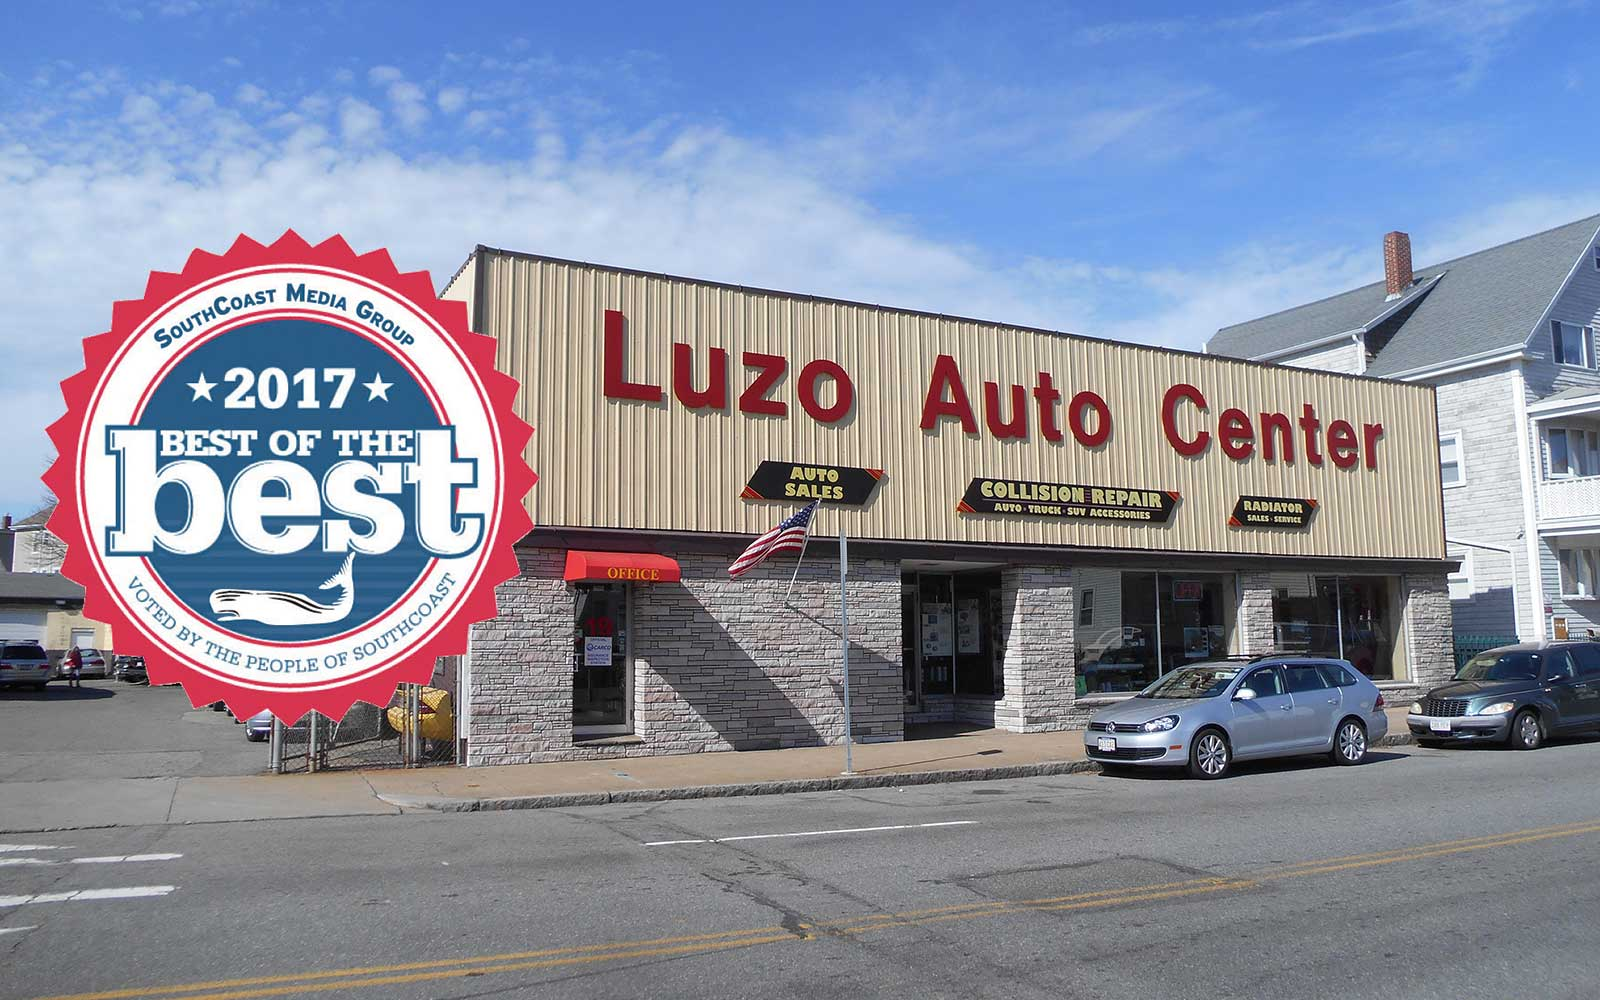 luzoautocenter-best2017